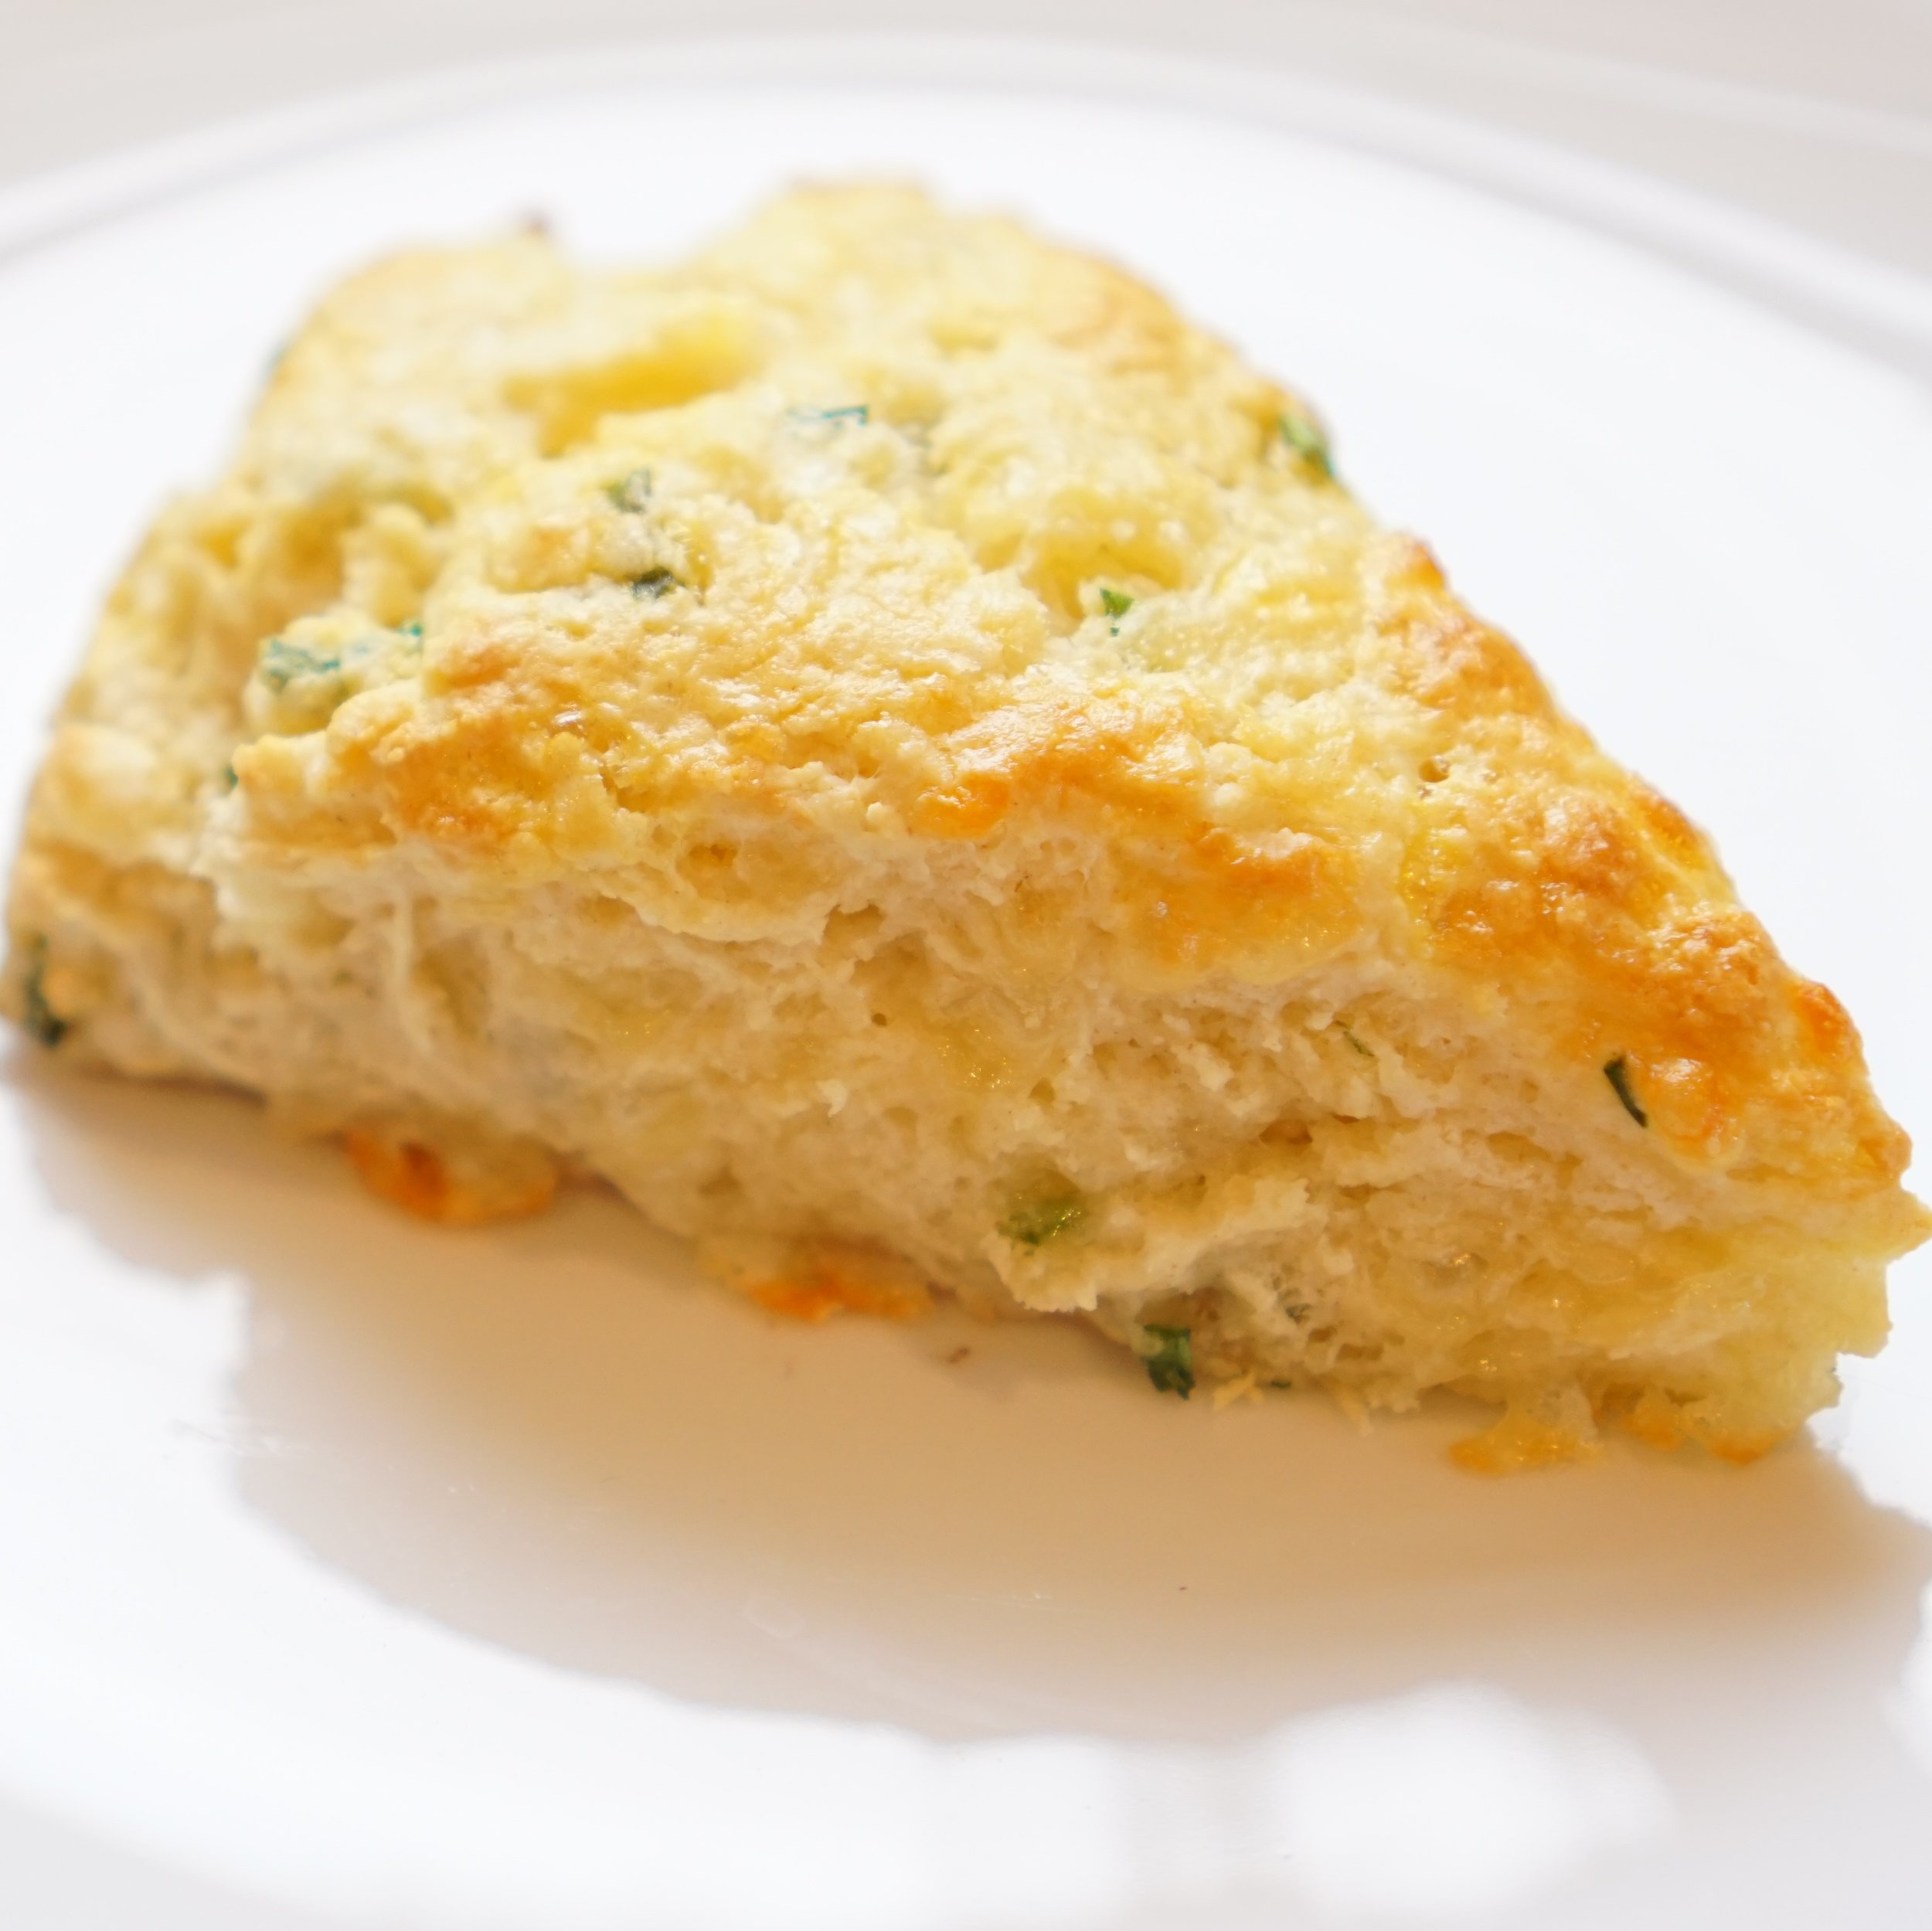 Cheddar and Chive Scone